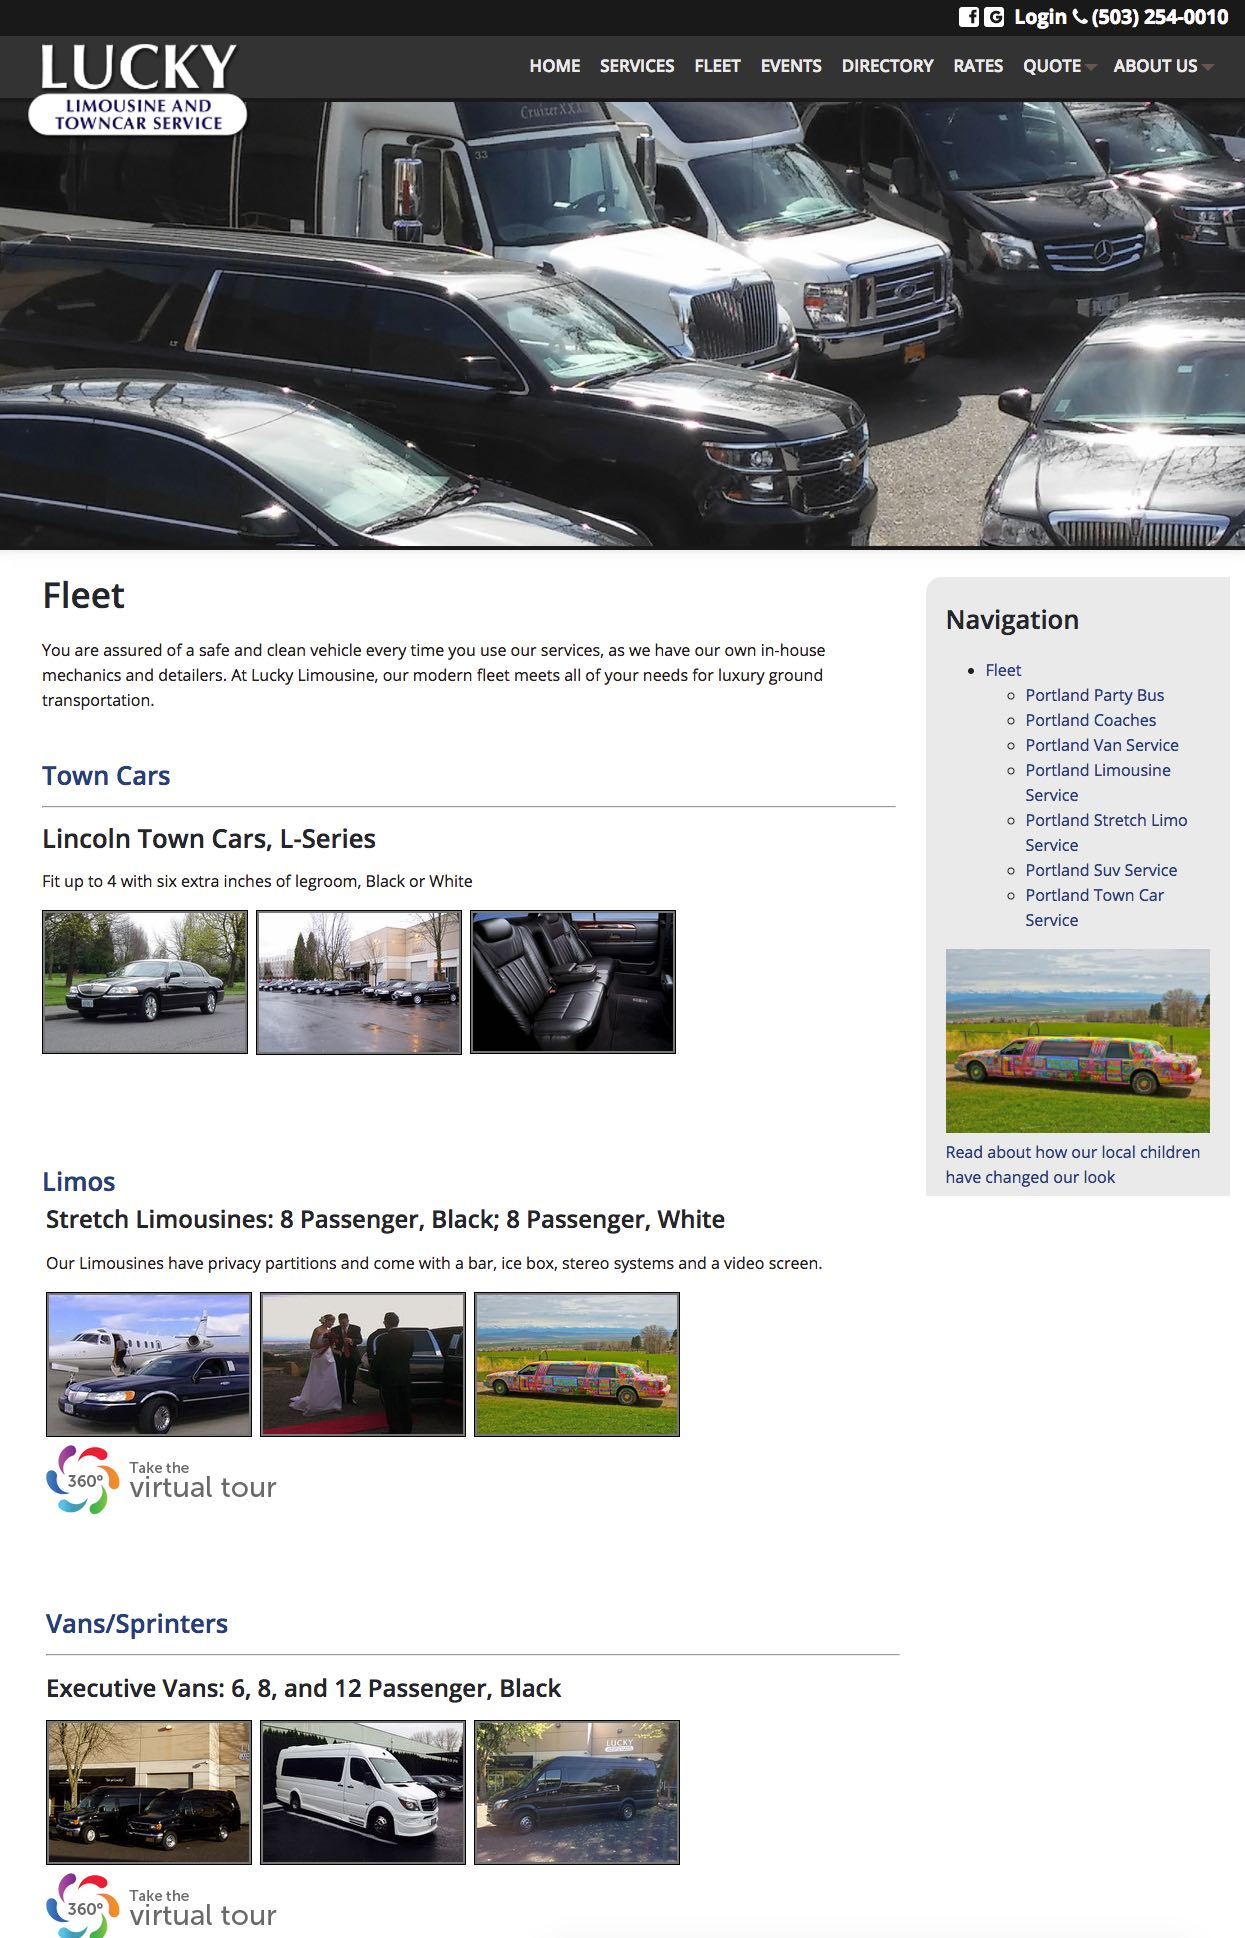 Lucky Limousine and Town Car Service Fleet